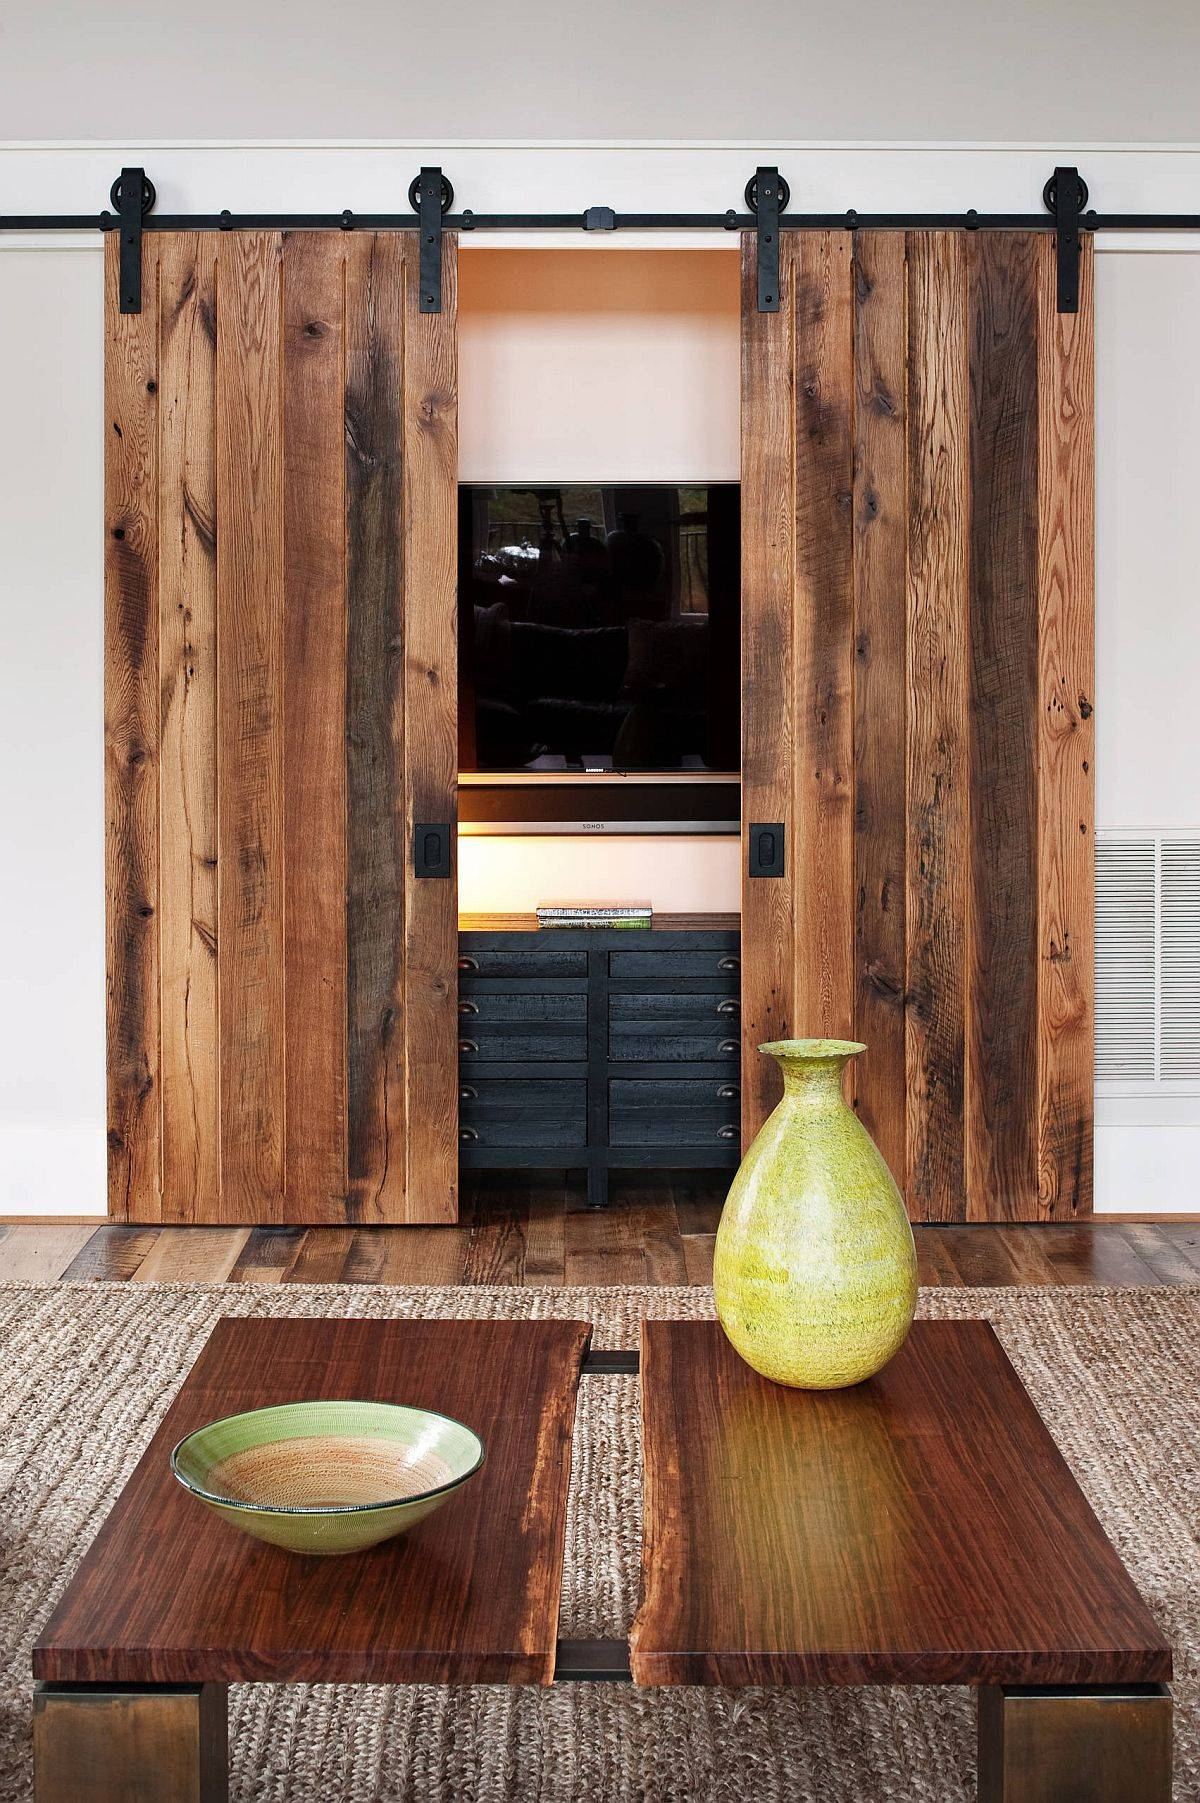 Sliding-barn-style-doors-for-the-TV-unit-bring-rustic-charm-to-this-white-living-space-31816